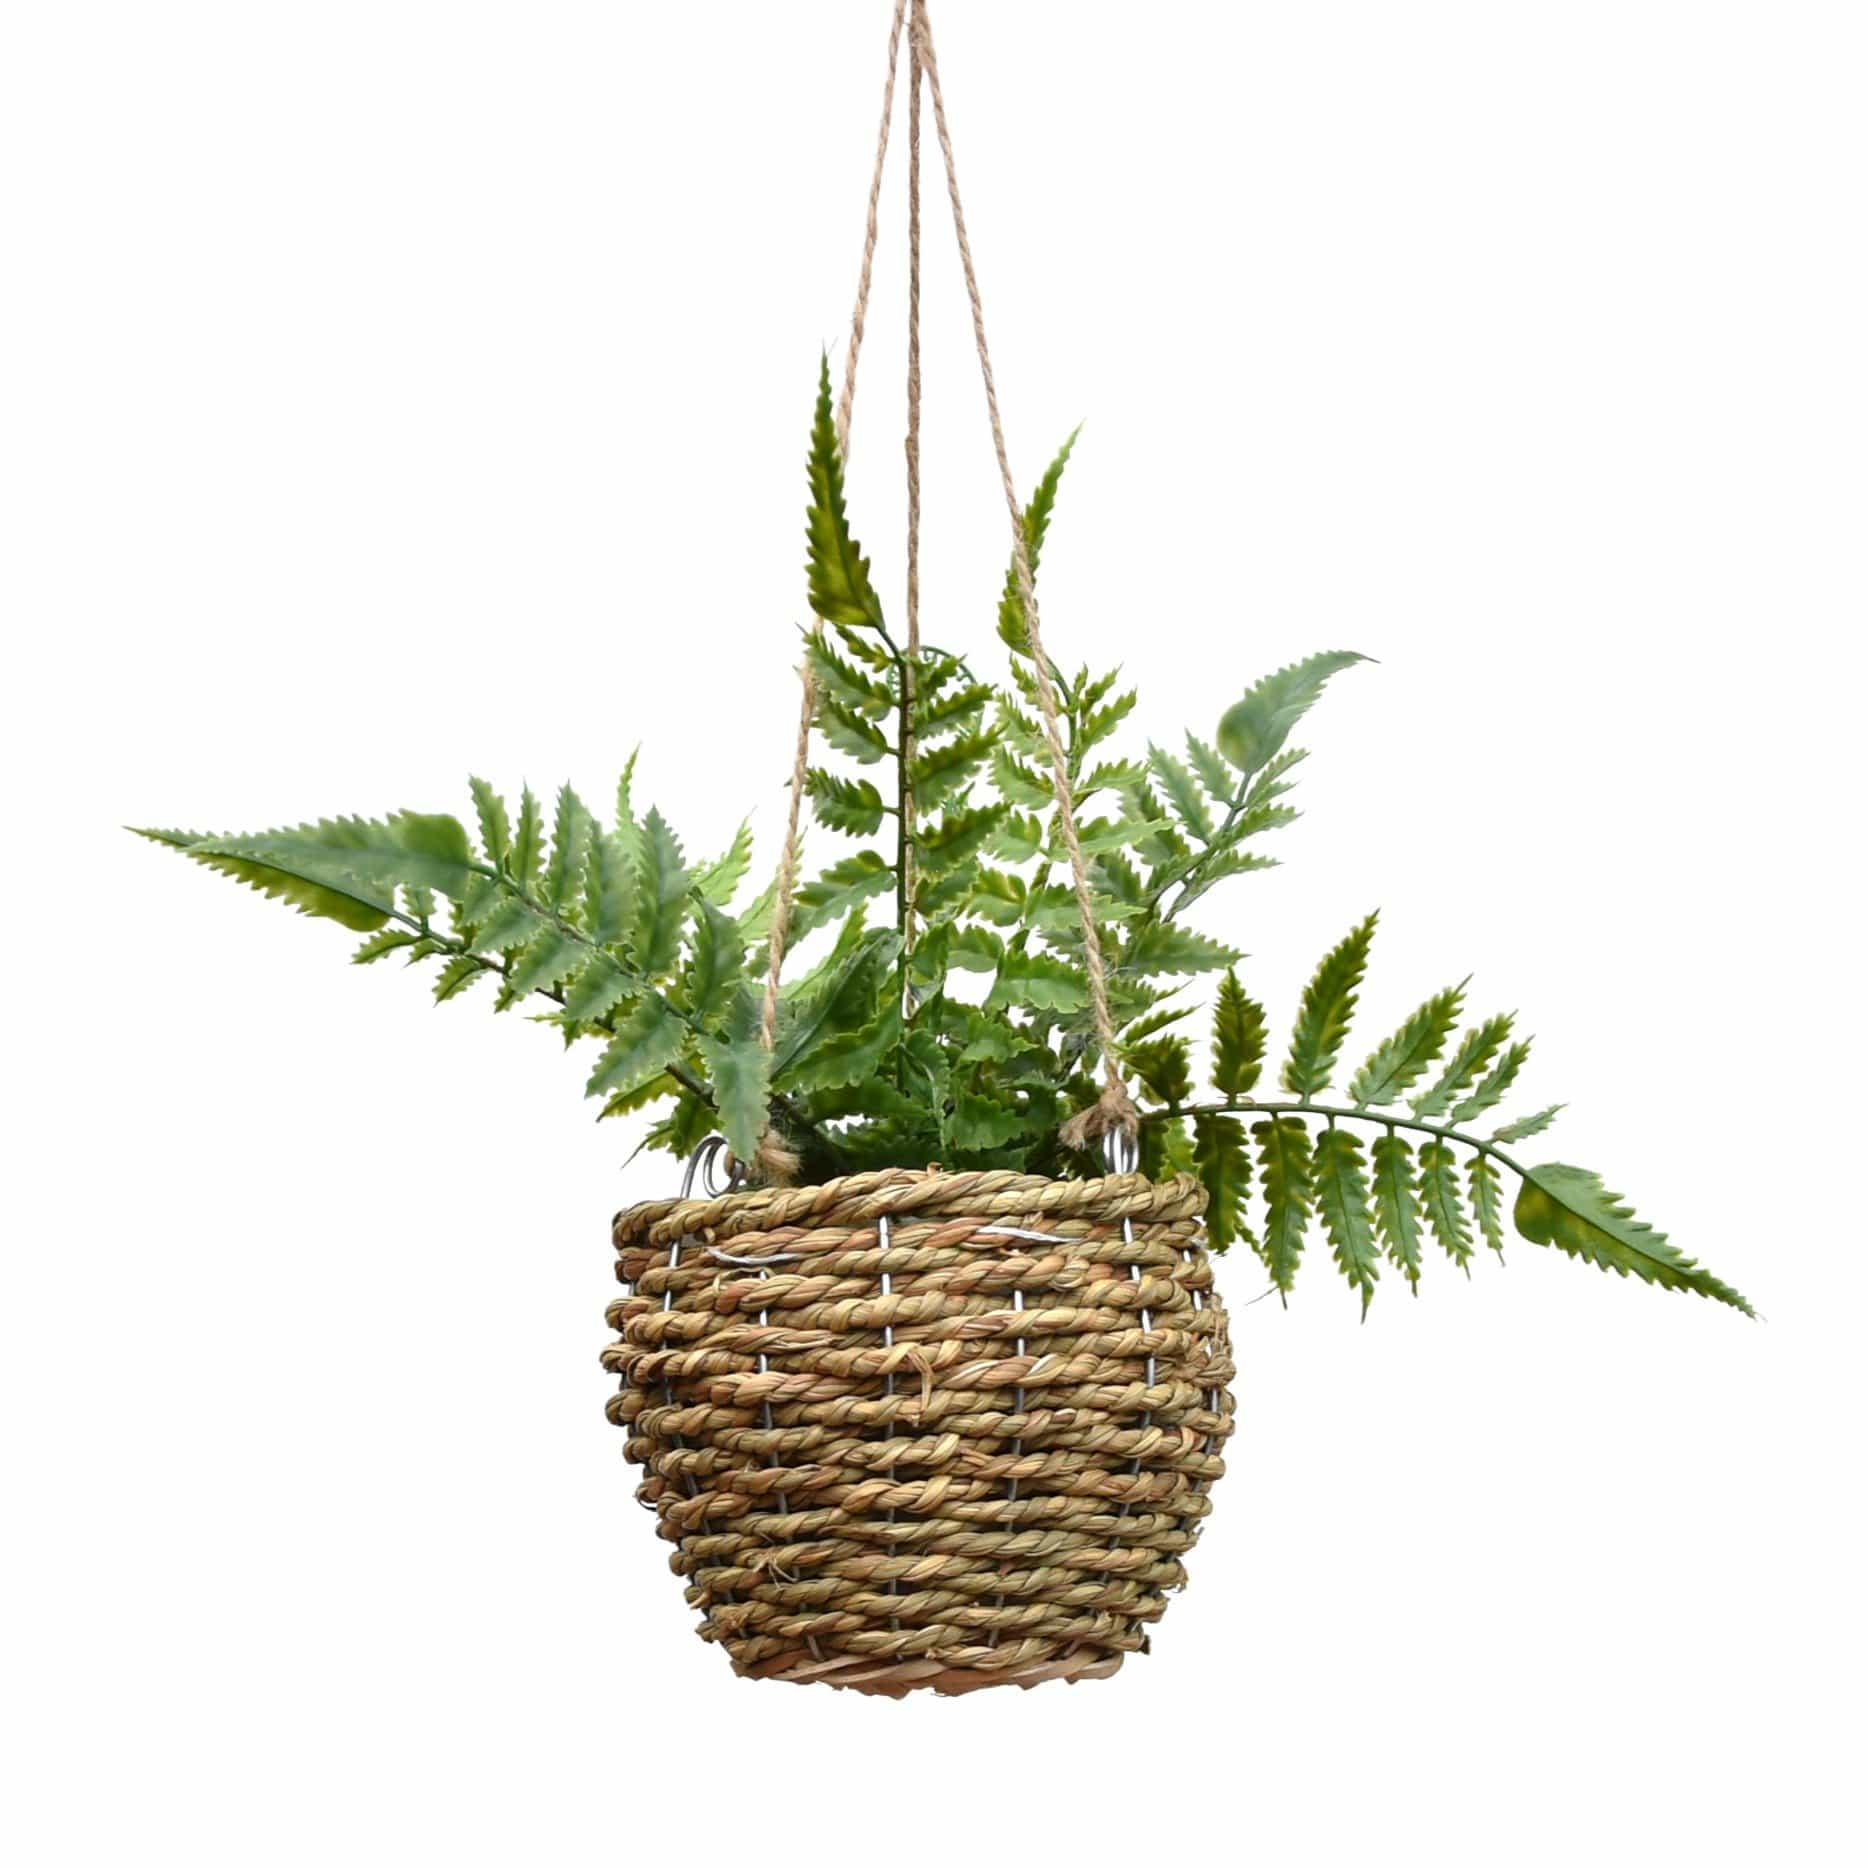 Faux Hanging Fern in Rattan Basket in Gift Box 40cm 1PK